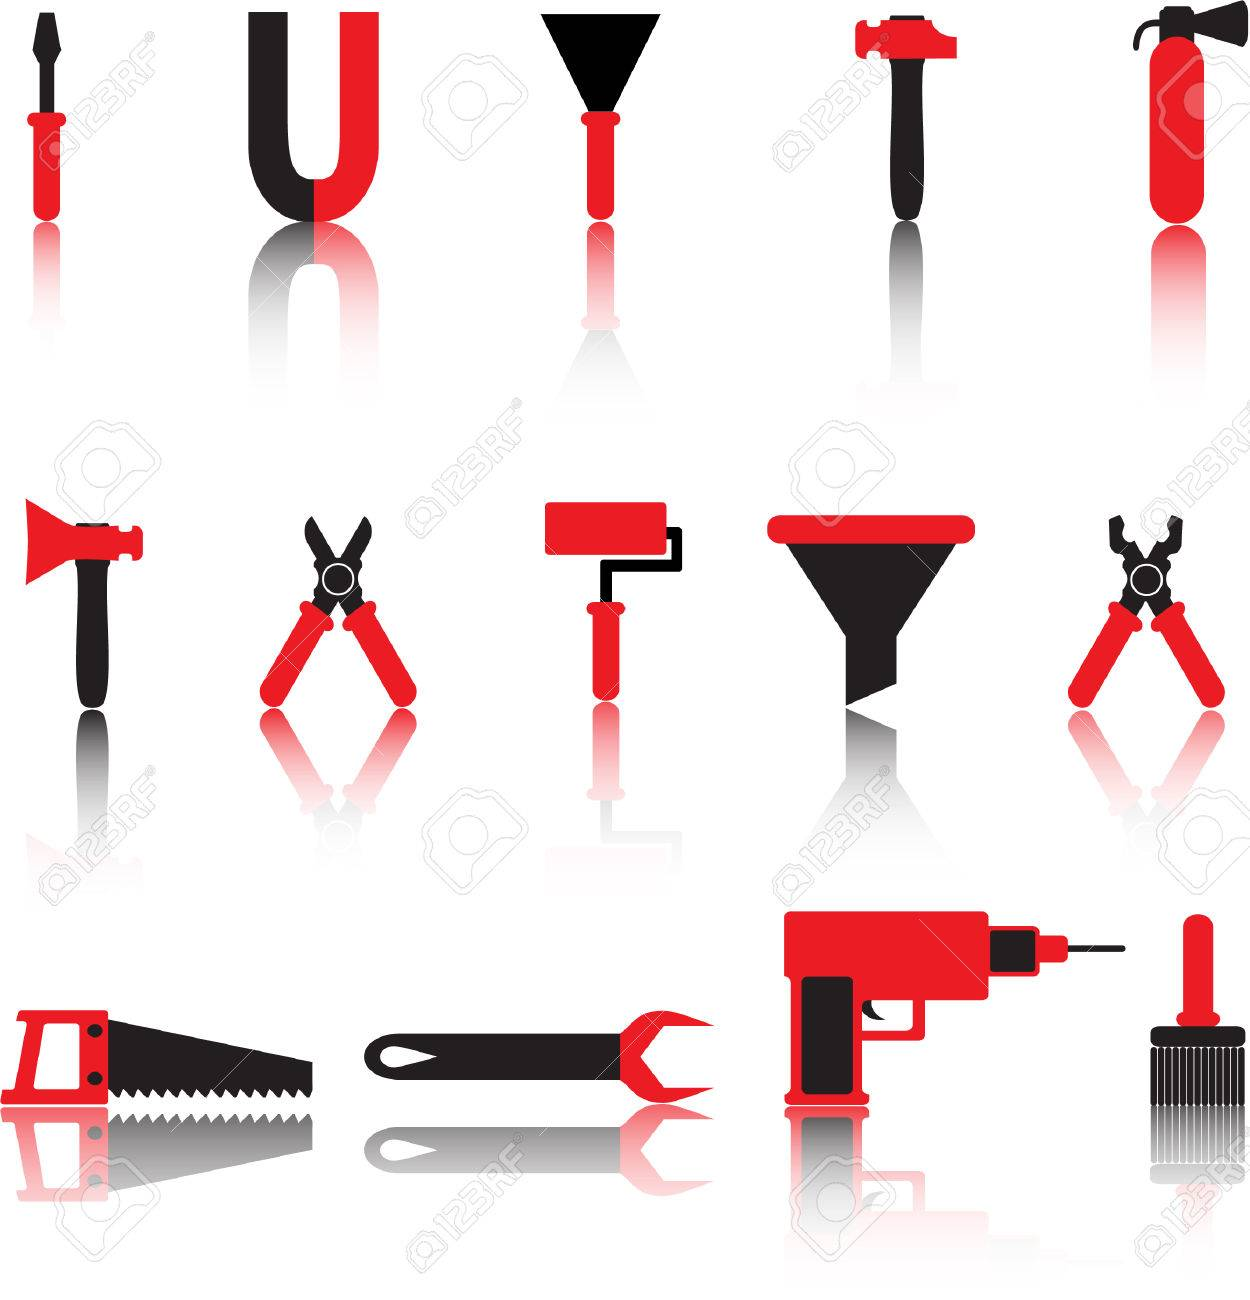 tools vector icons set. black and red Stock Vector - 4545030